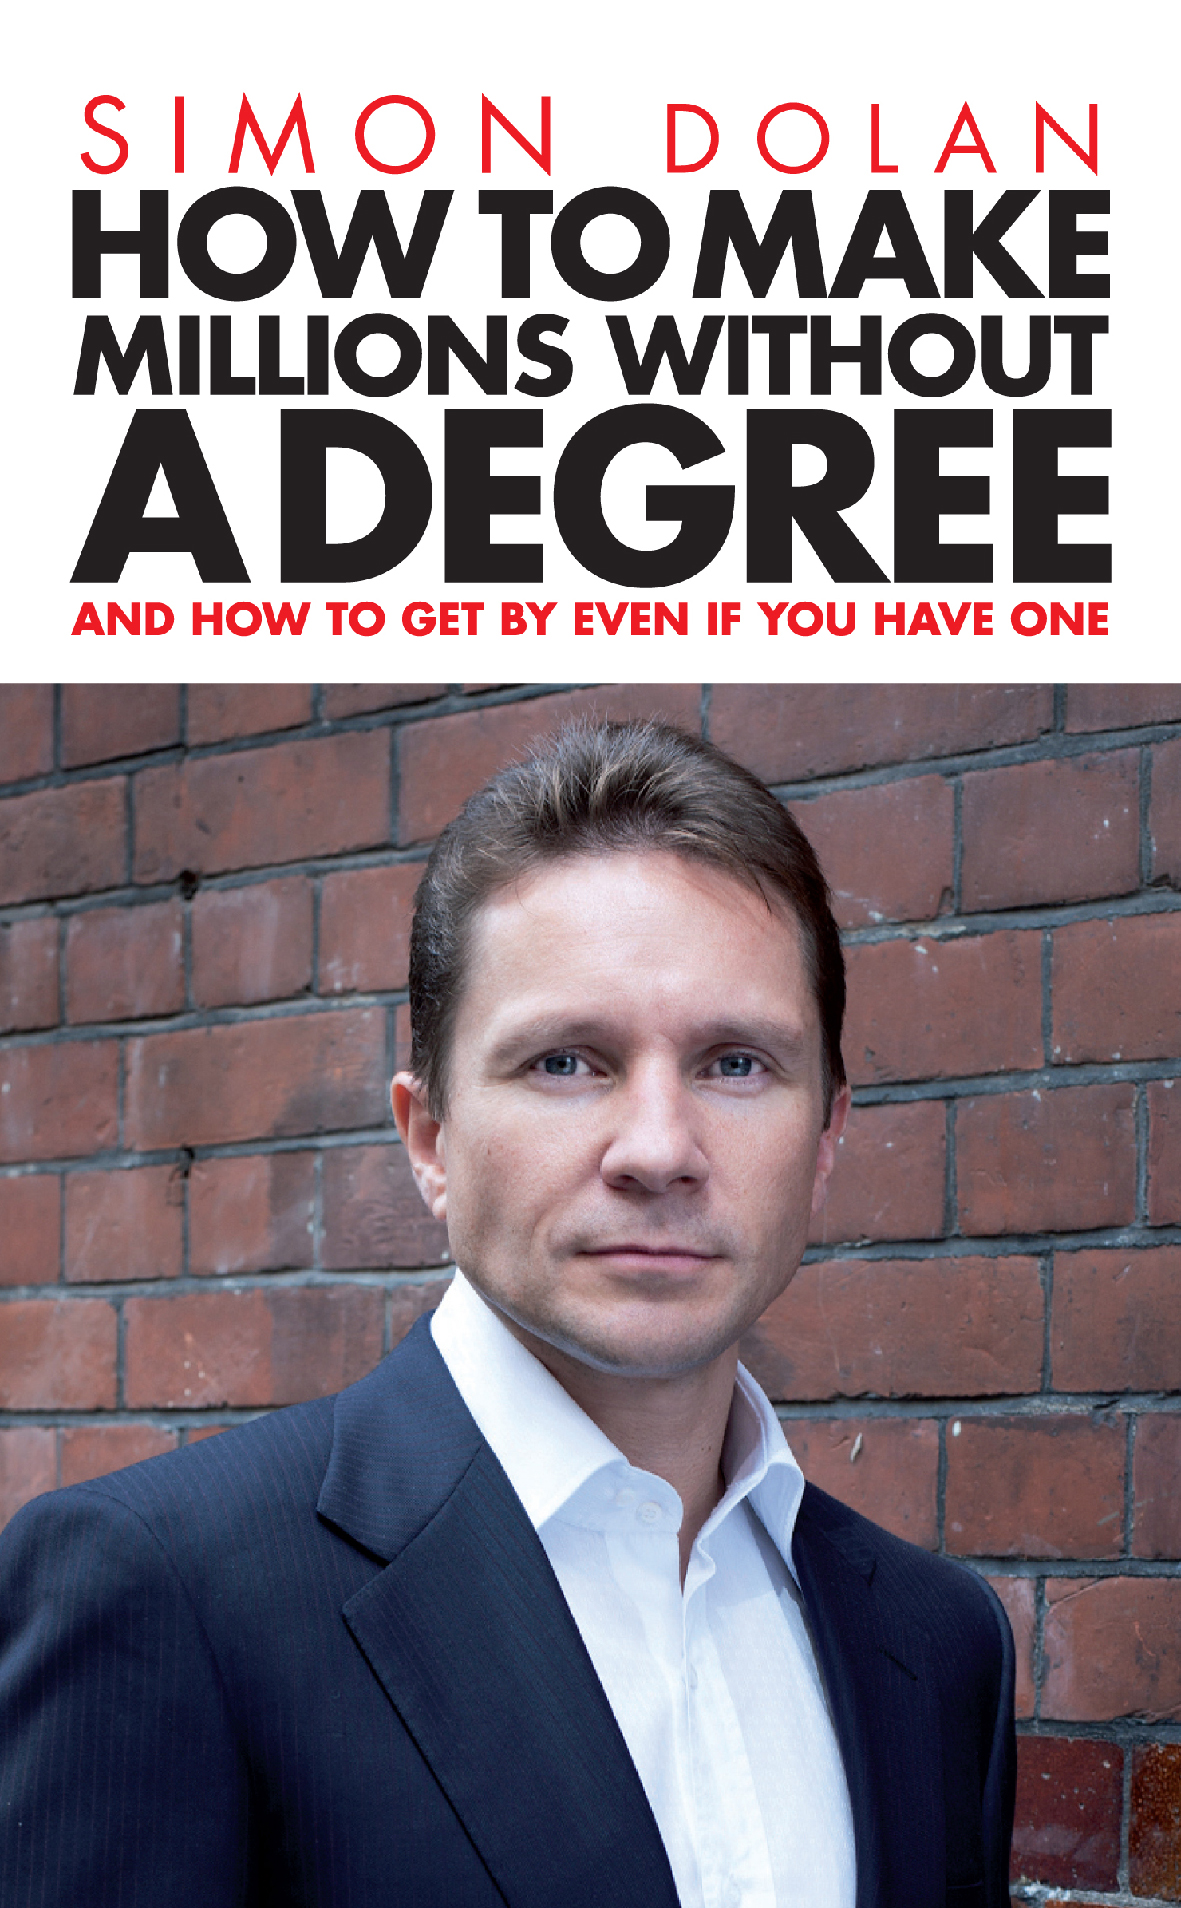 How To Make Millions Without A Degree: And how to get by even if you have one